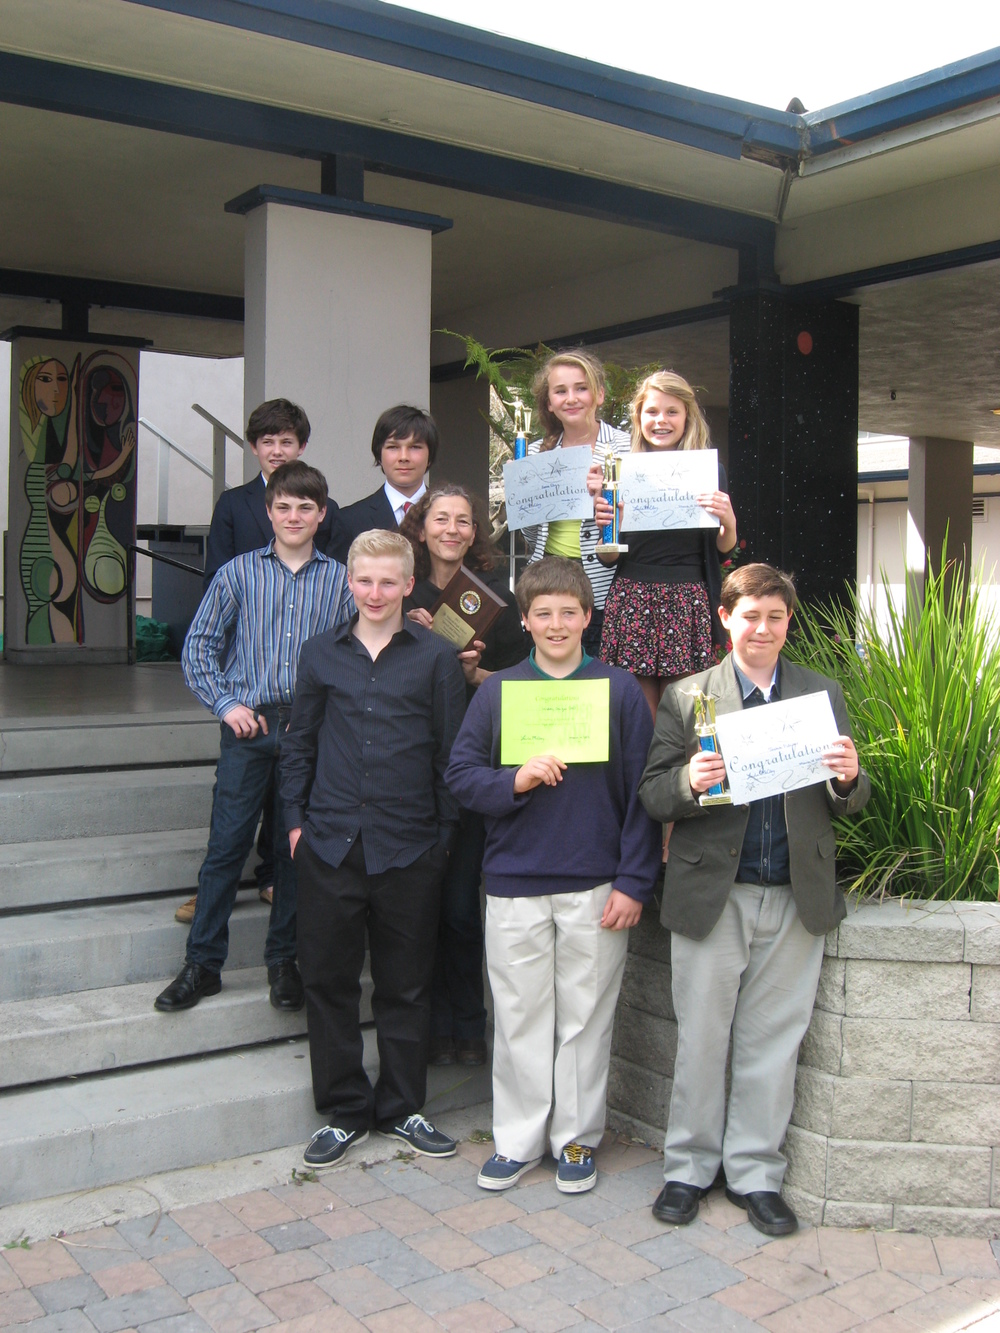 REAL School Marin sweeps the honors at the St. Vincent's Speech Tournament, 2013